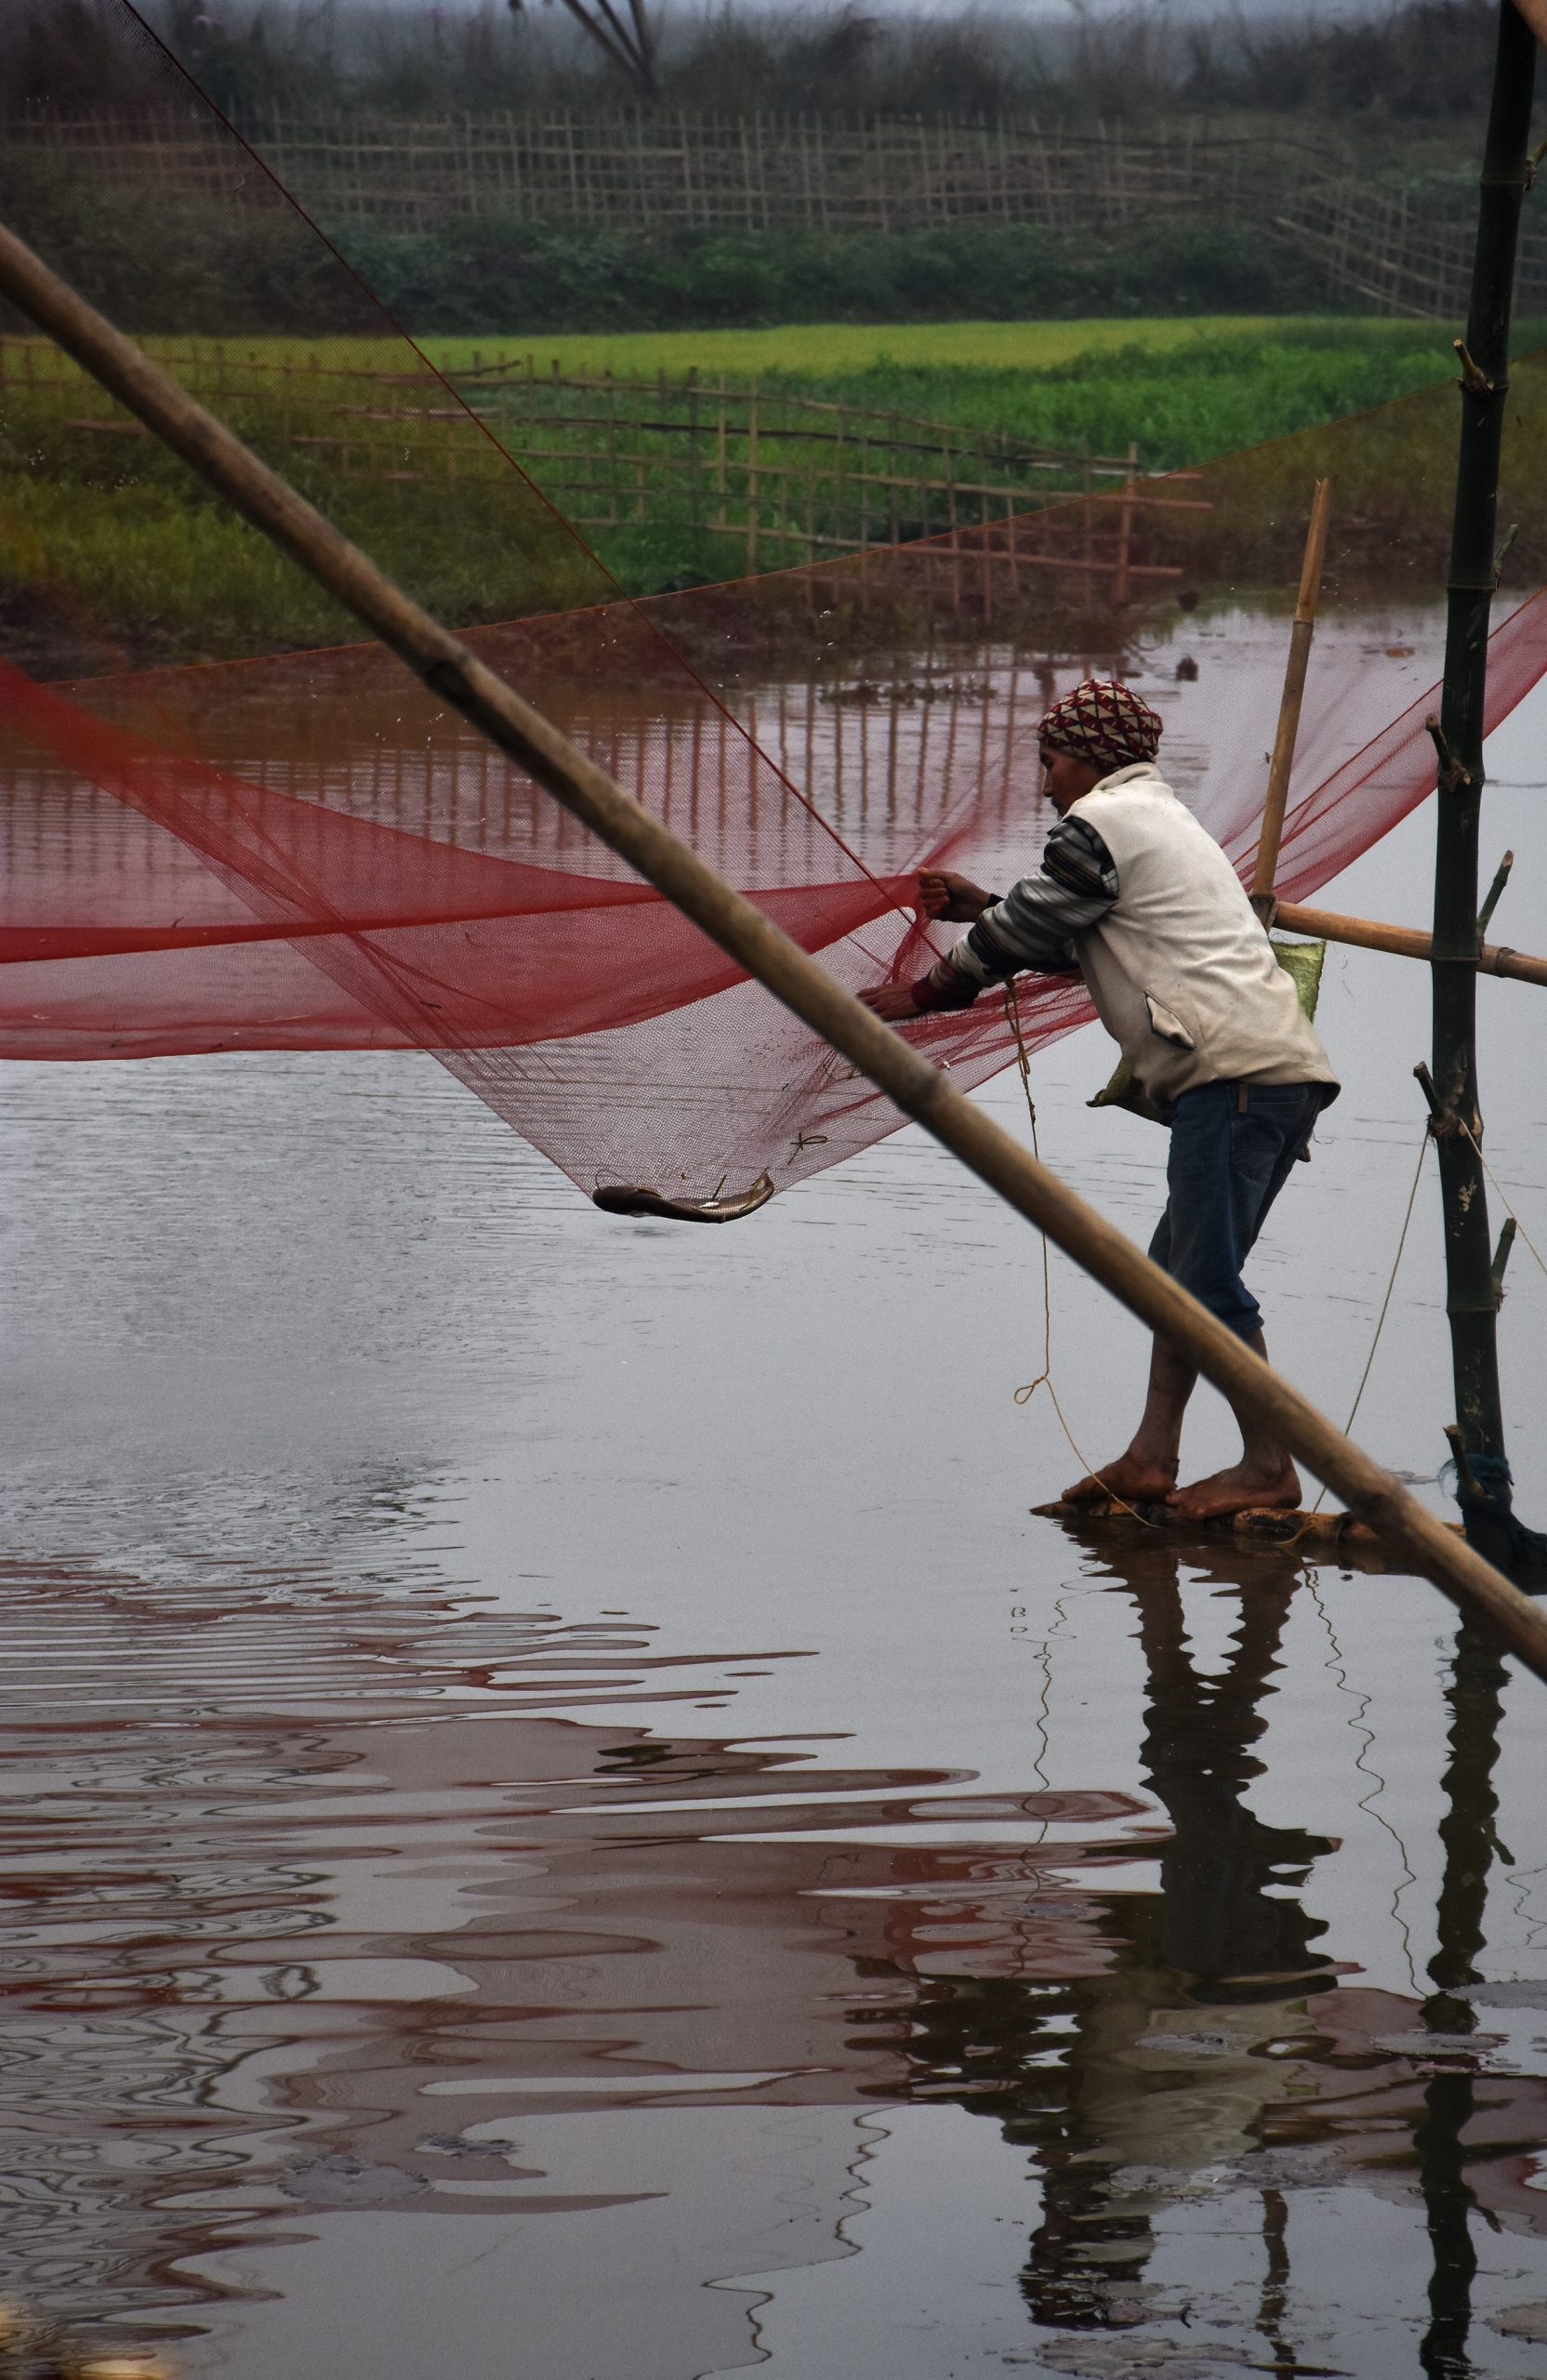 A fisherman with fishing net